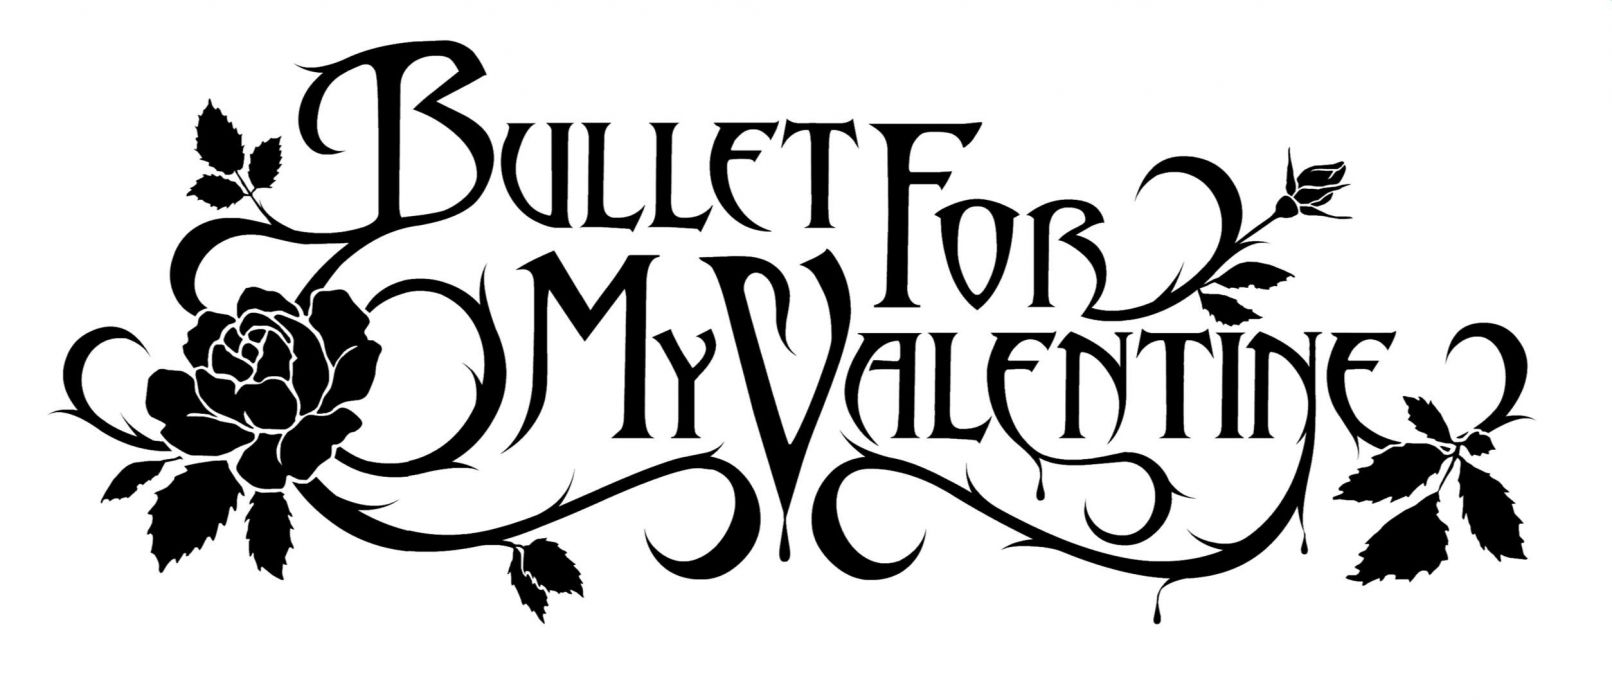 Bullet for my valentine heavy metal metalcore 41 wallpaper bullet for my valentine heavy metal metalcore 41 wallpaper voltagebd Image collections